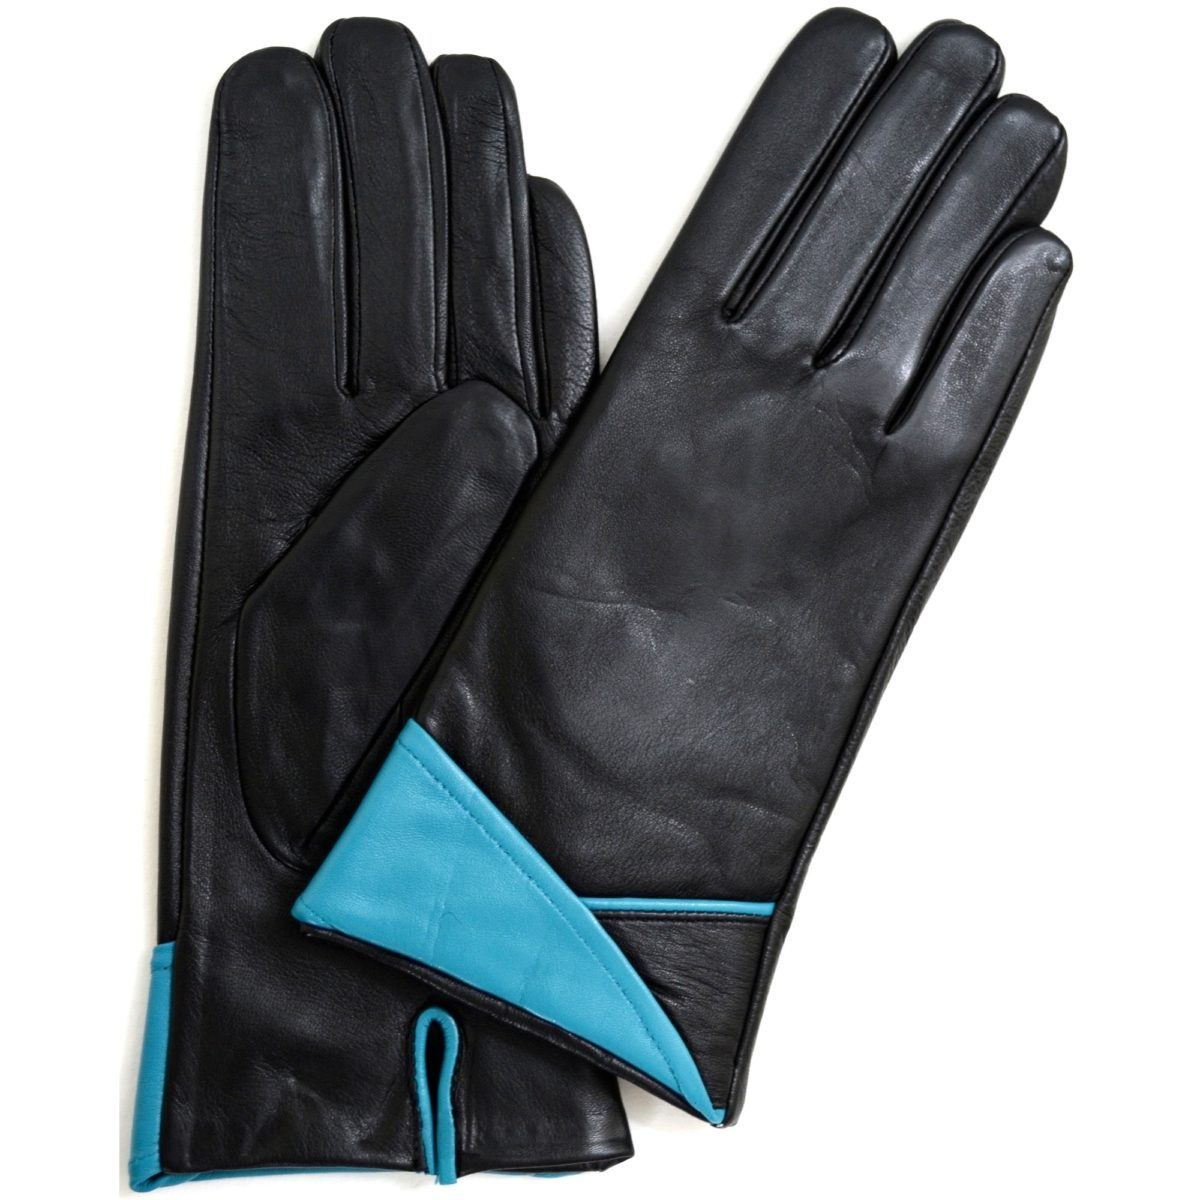 Alis - Leather Glove with Folded Cuff Design - Blue